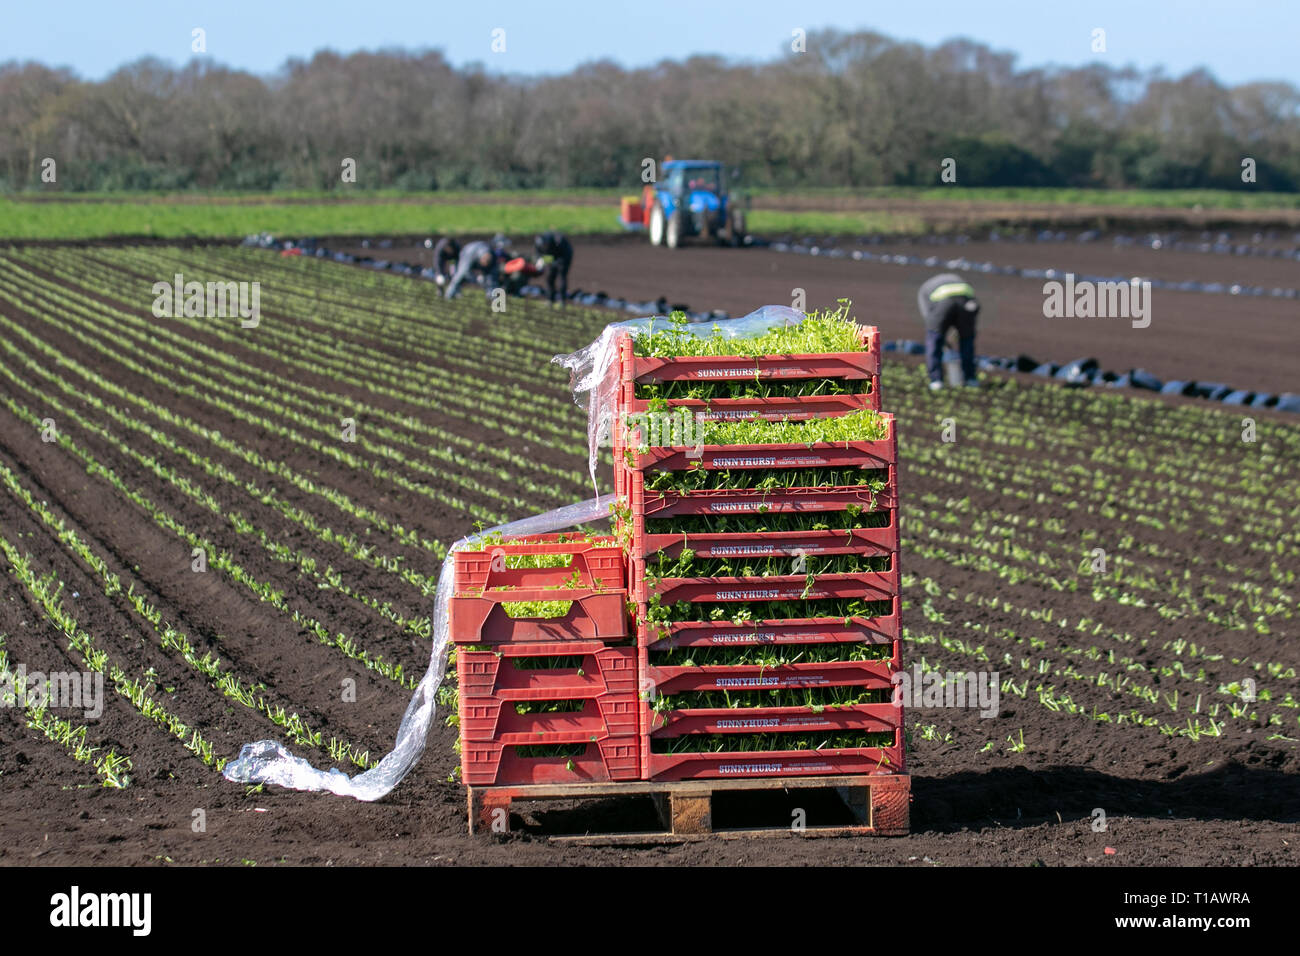 Tarleton, Lancashire. 25th March, 2019. UK Weather. Spring planting of lettuce as Eu migrant labourers return to 'The Salad Bowl' of Lancashire to assist with the springtime planting of various varieties of seedlings.  These early crops will likely then are covered in agricultural fleece for a week or so to protect against frost. Credit. MediaWorldImages/AlamyLiveNews - Stock Image